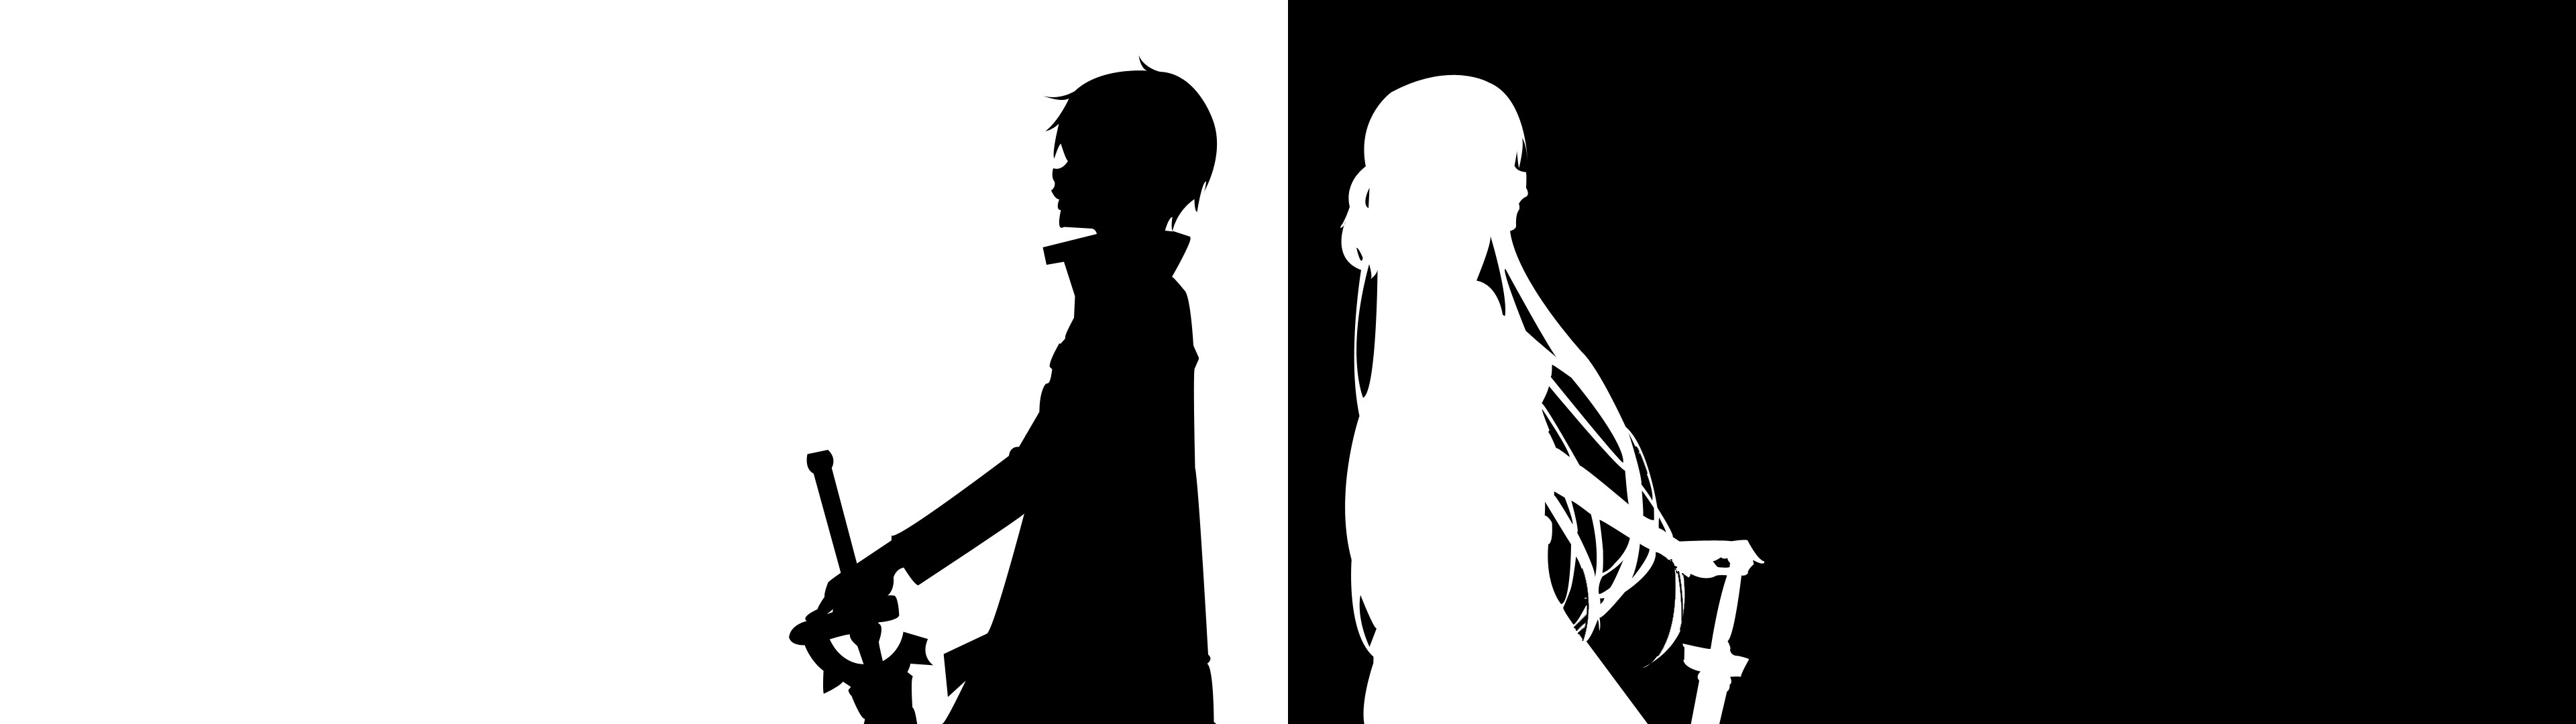 3840x1080 Minimal Sword Art Online [Dual-Screen] [] ...